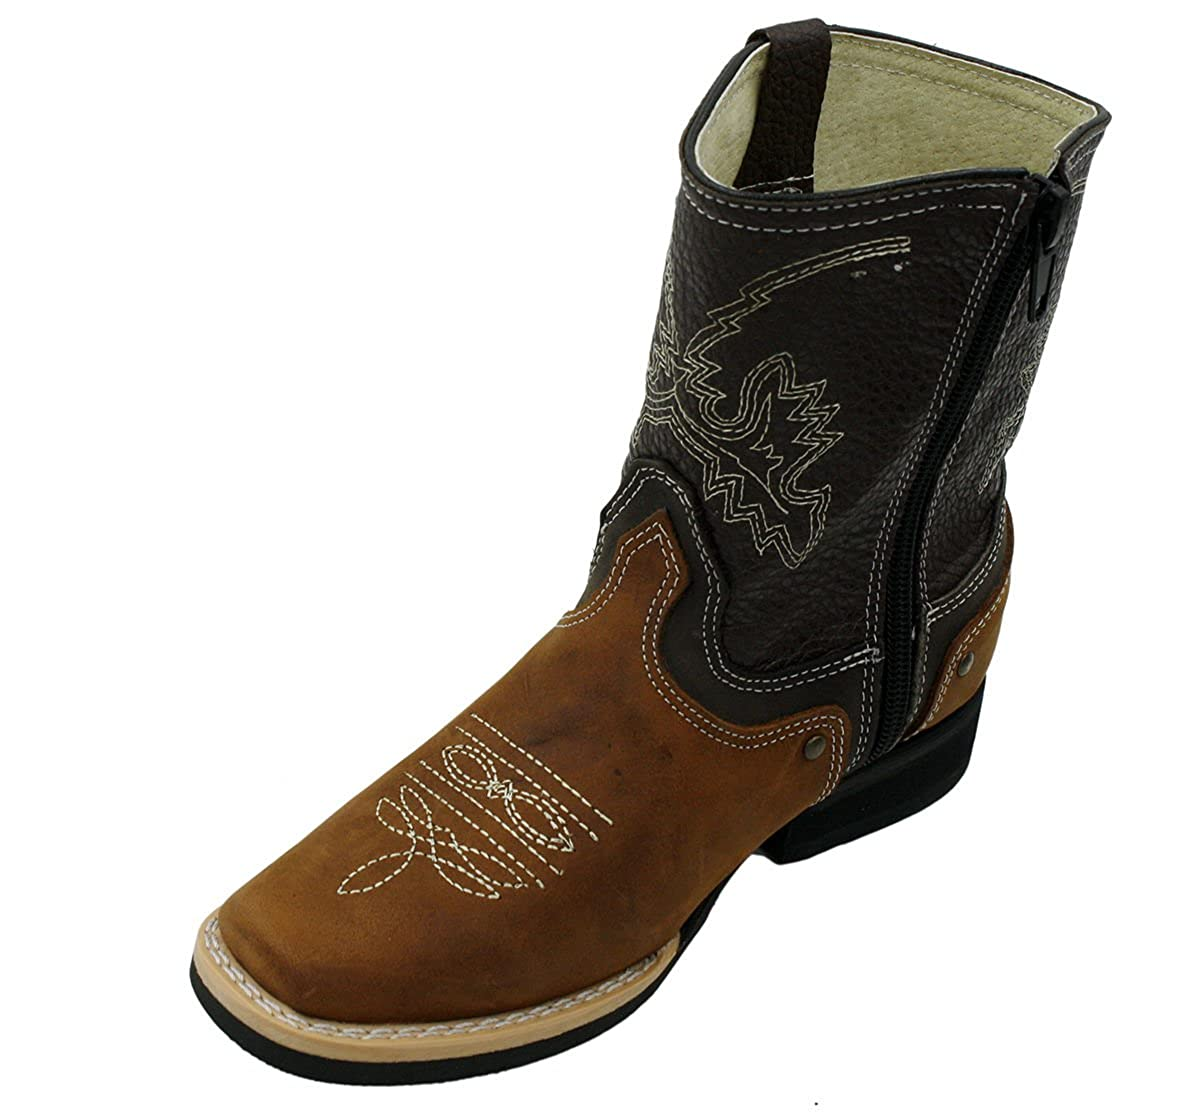 Kids Unisex Genuine Leather Western Rodeo Cowboy Side Zipper Boots Tan Cafe-Toddler-4